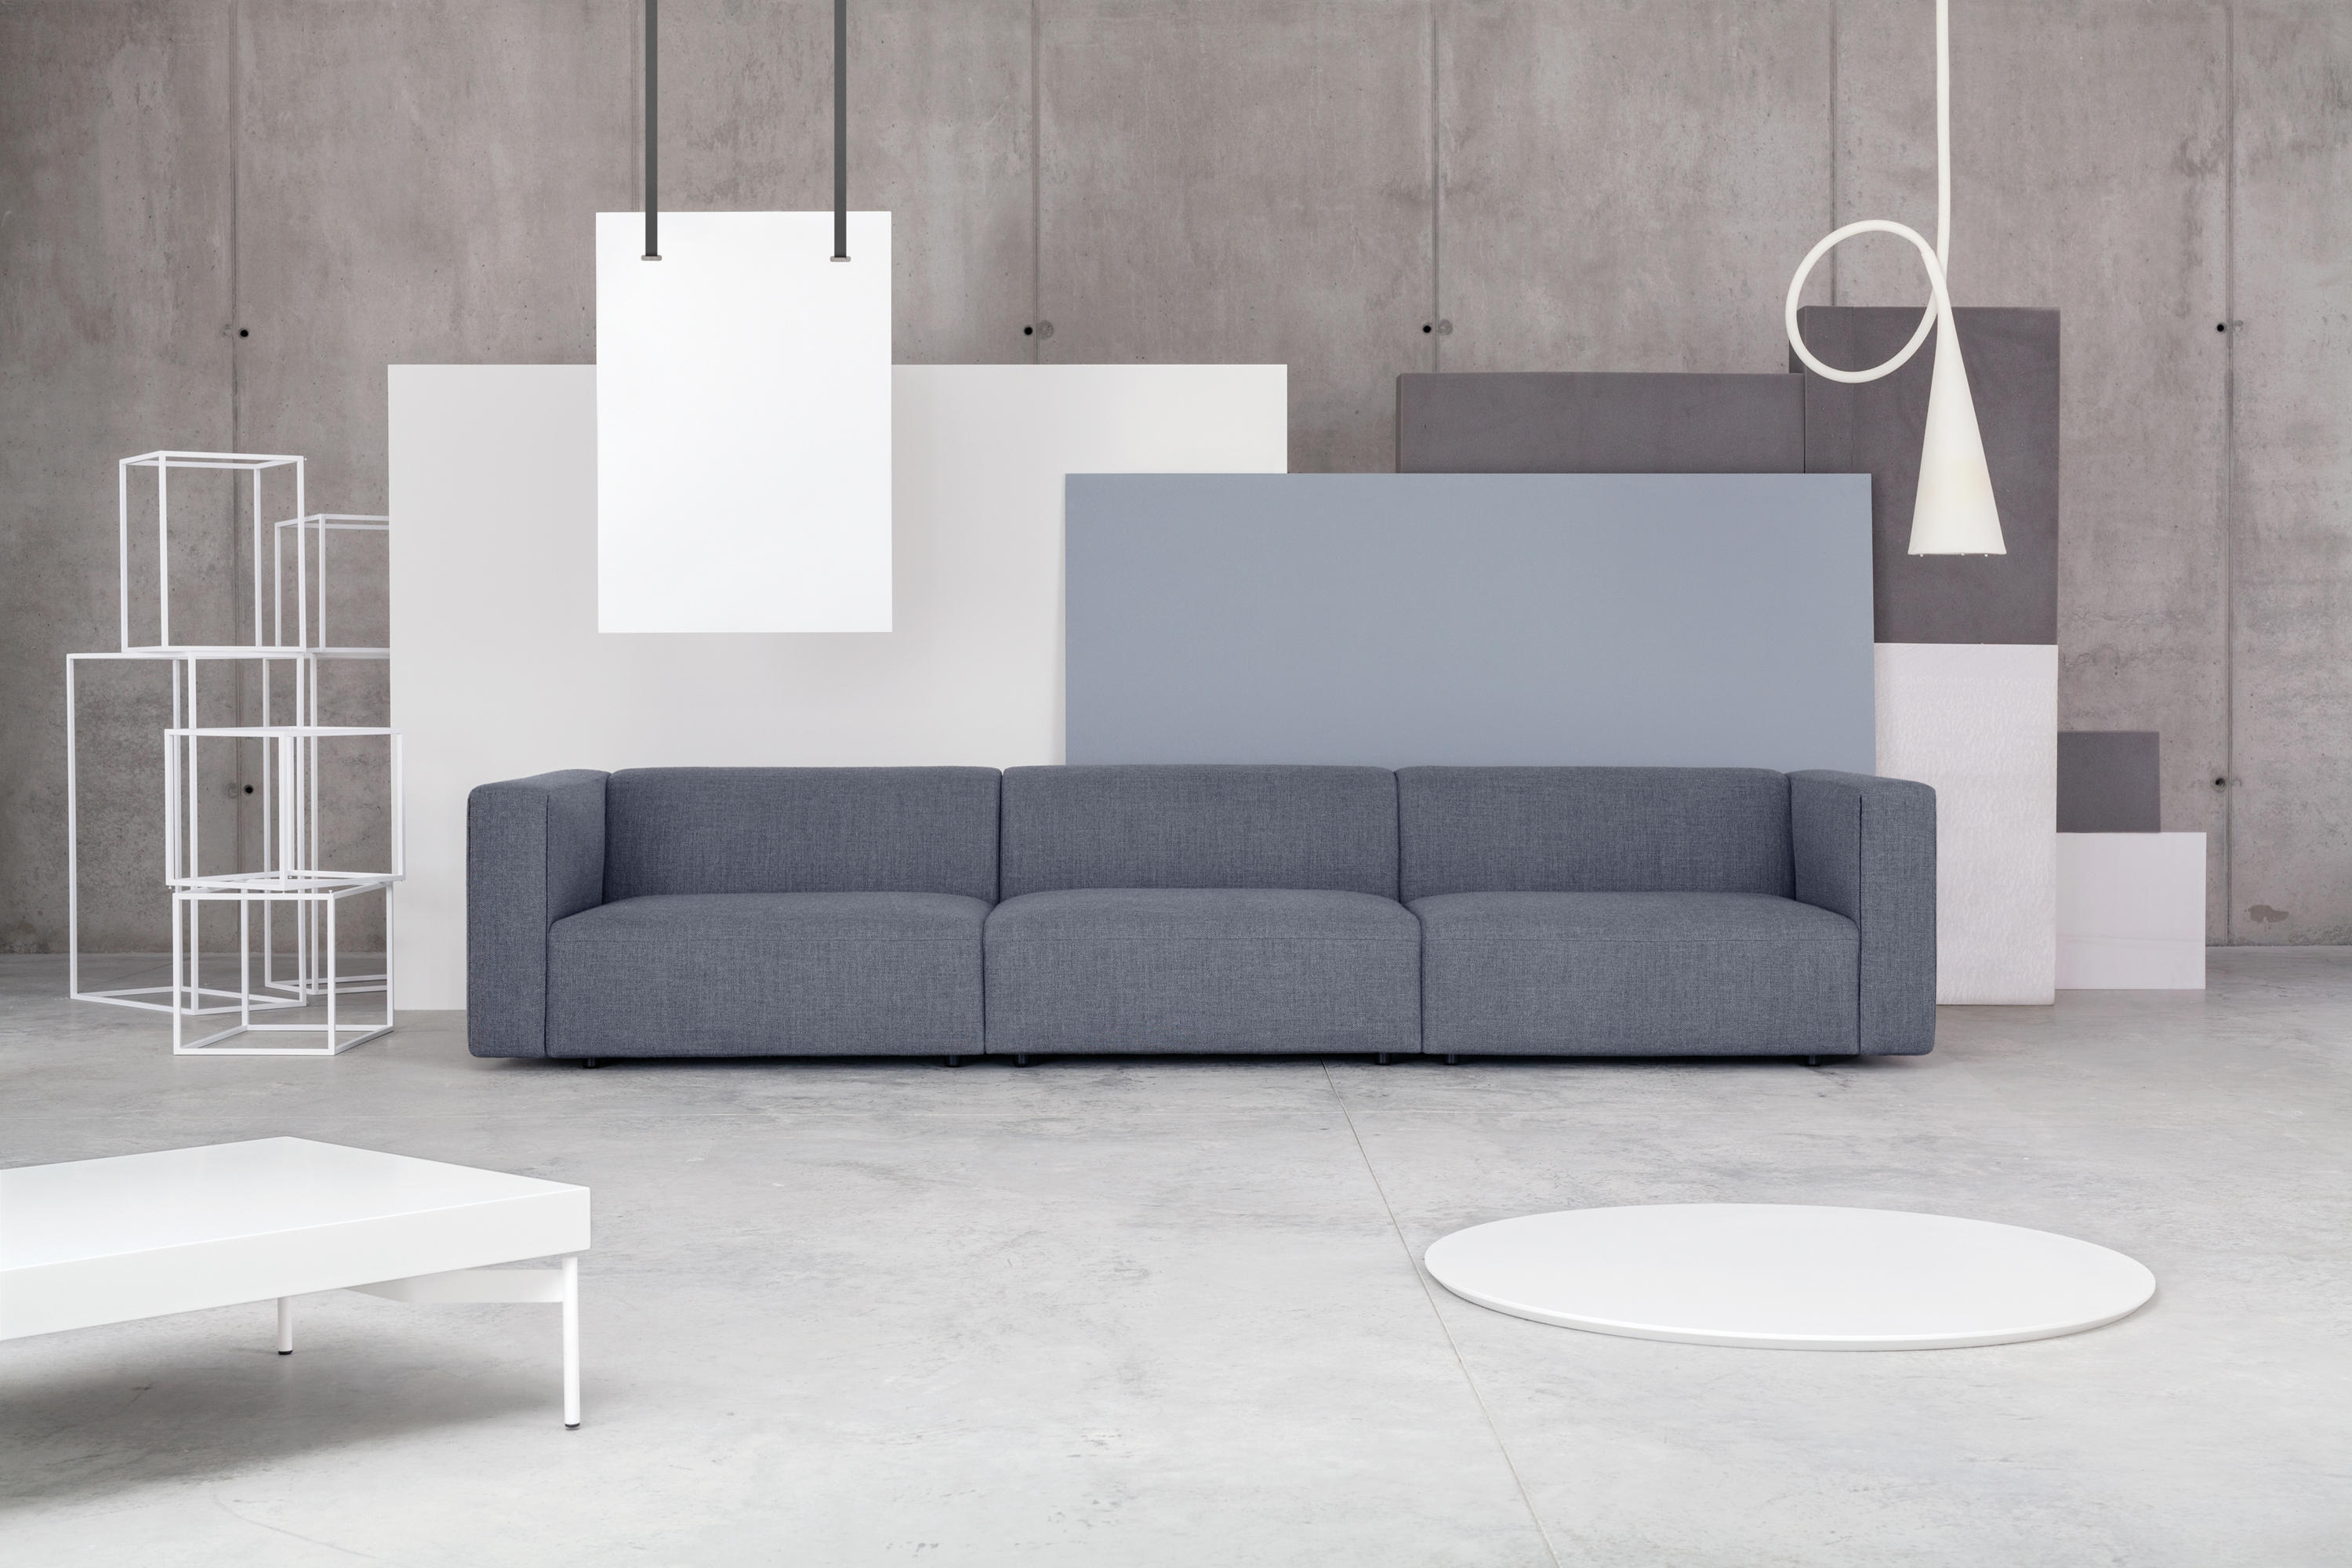 matching sofas and loveseats Shop ethan allen's sofas, couches, and loveseats featuring a selection of fabric, leather, and slipcovers free design service and inspiration ethan allen.